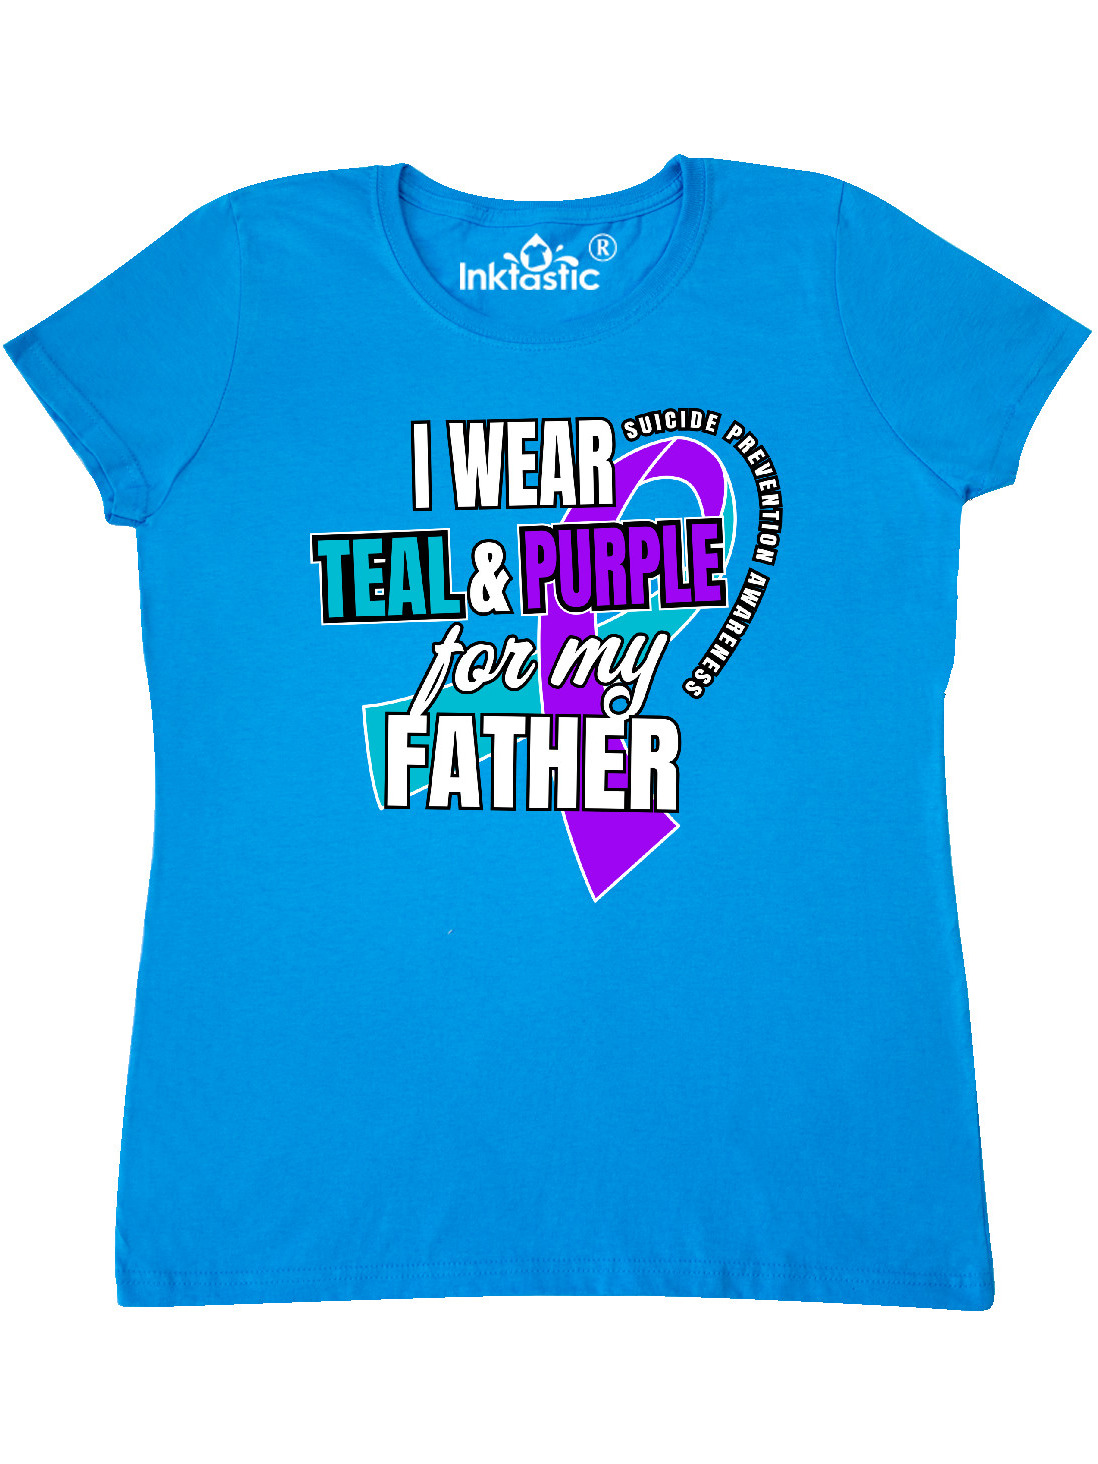 inktastic Suicide Prevention I Wear Teal and Purple for My Baby T-Shirt